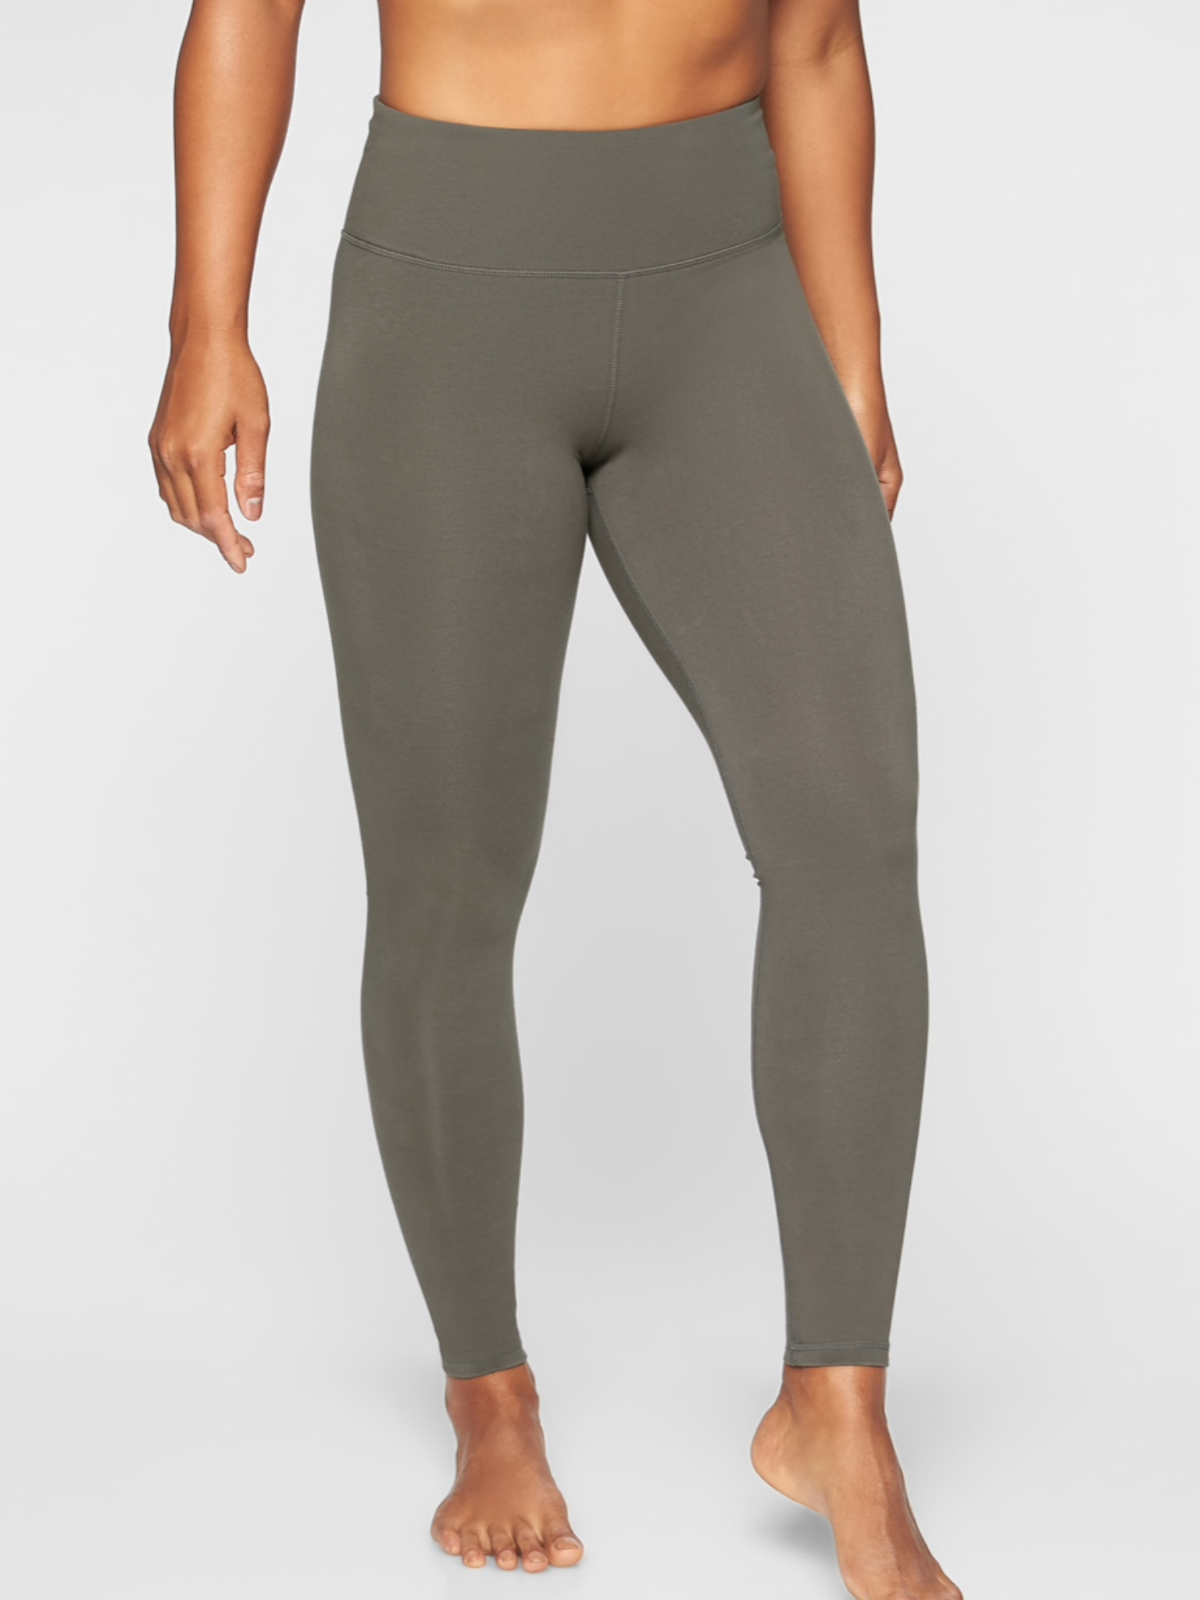 Athleta Organic Cotton Be Be Be Present Tight, NWT, S. -ONLINE EXCLUSIVE- 83f4ff